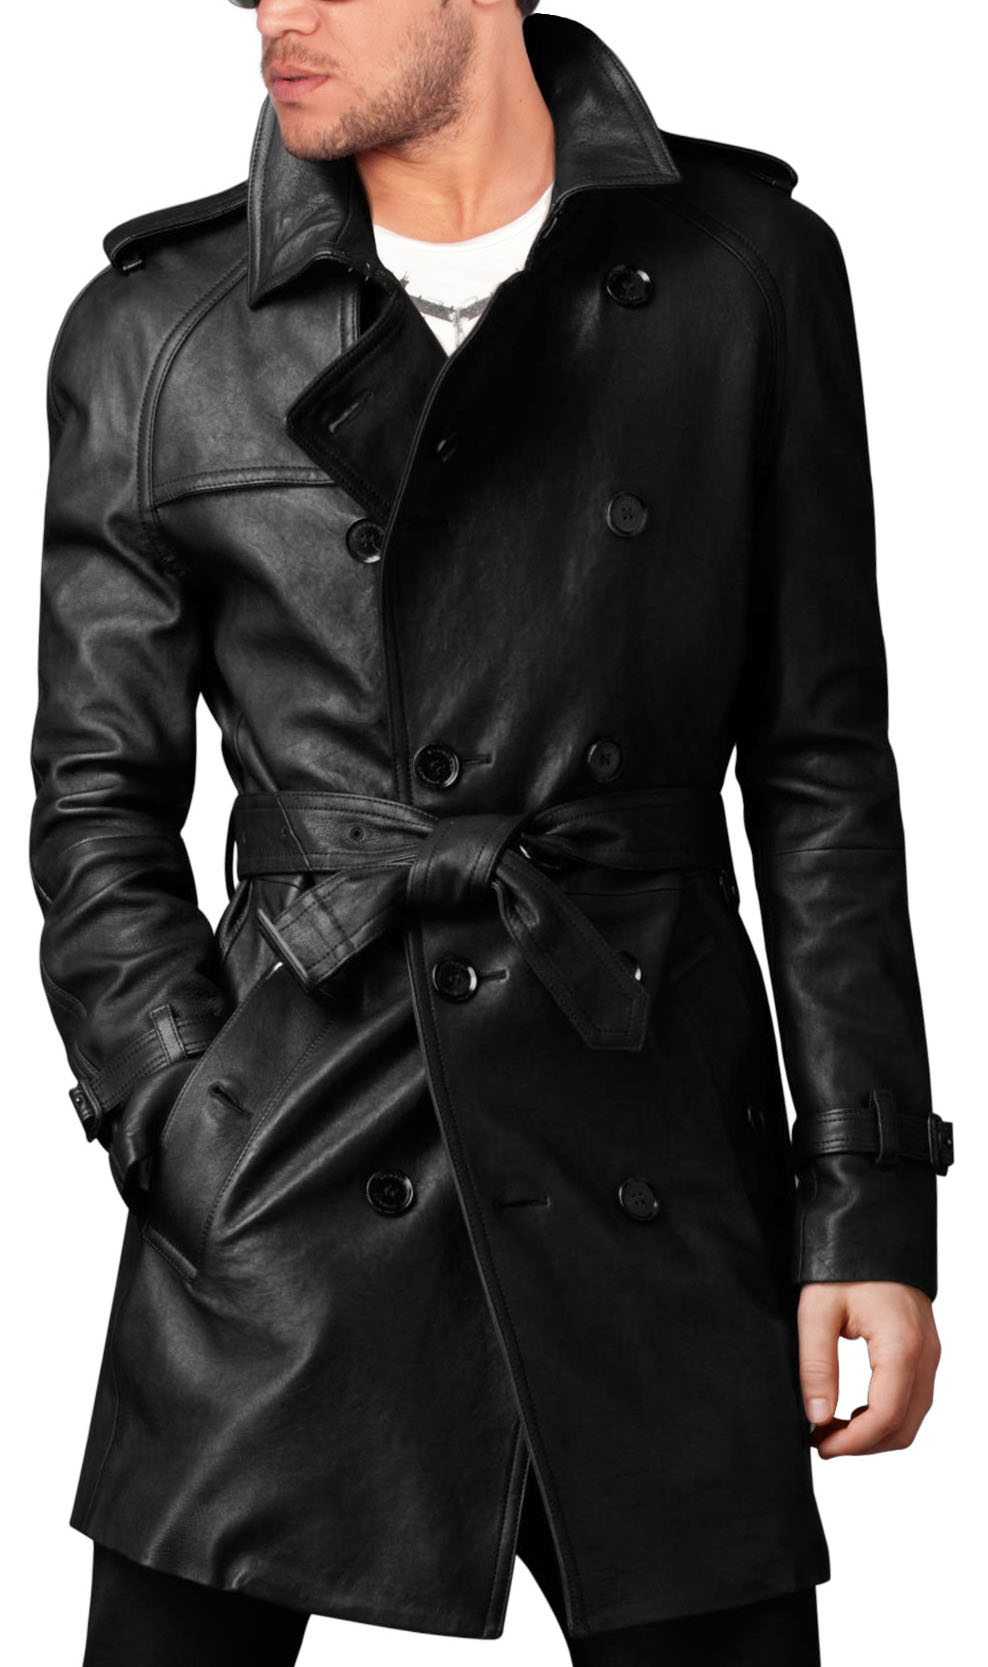 leather coats stylish leather coat | buy men stylish leather coat online LZBJYES